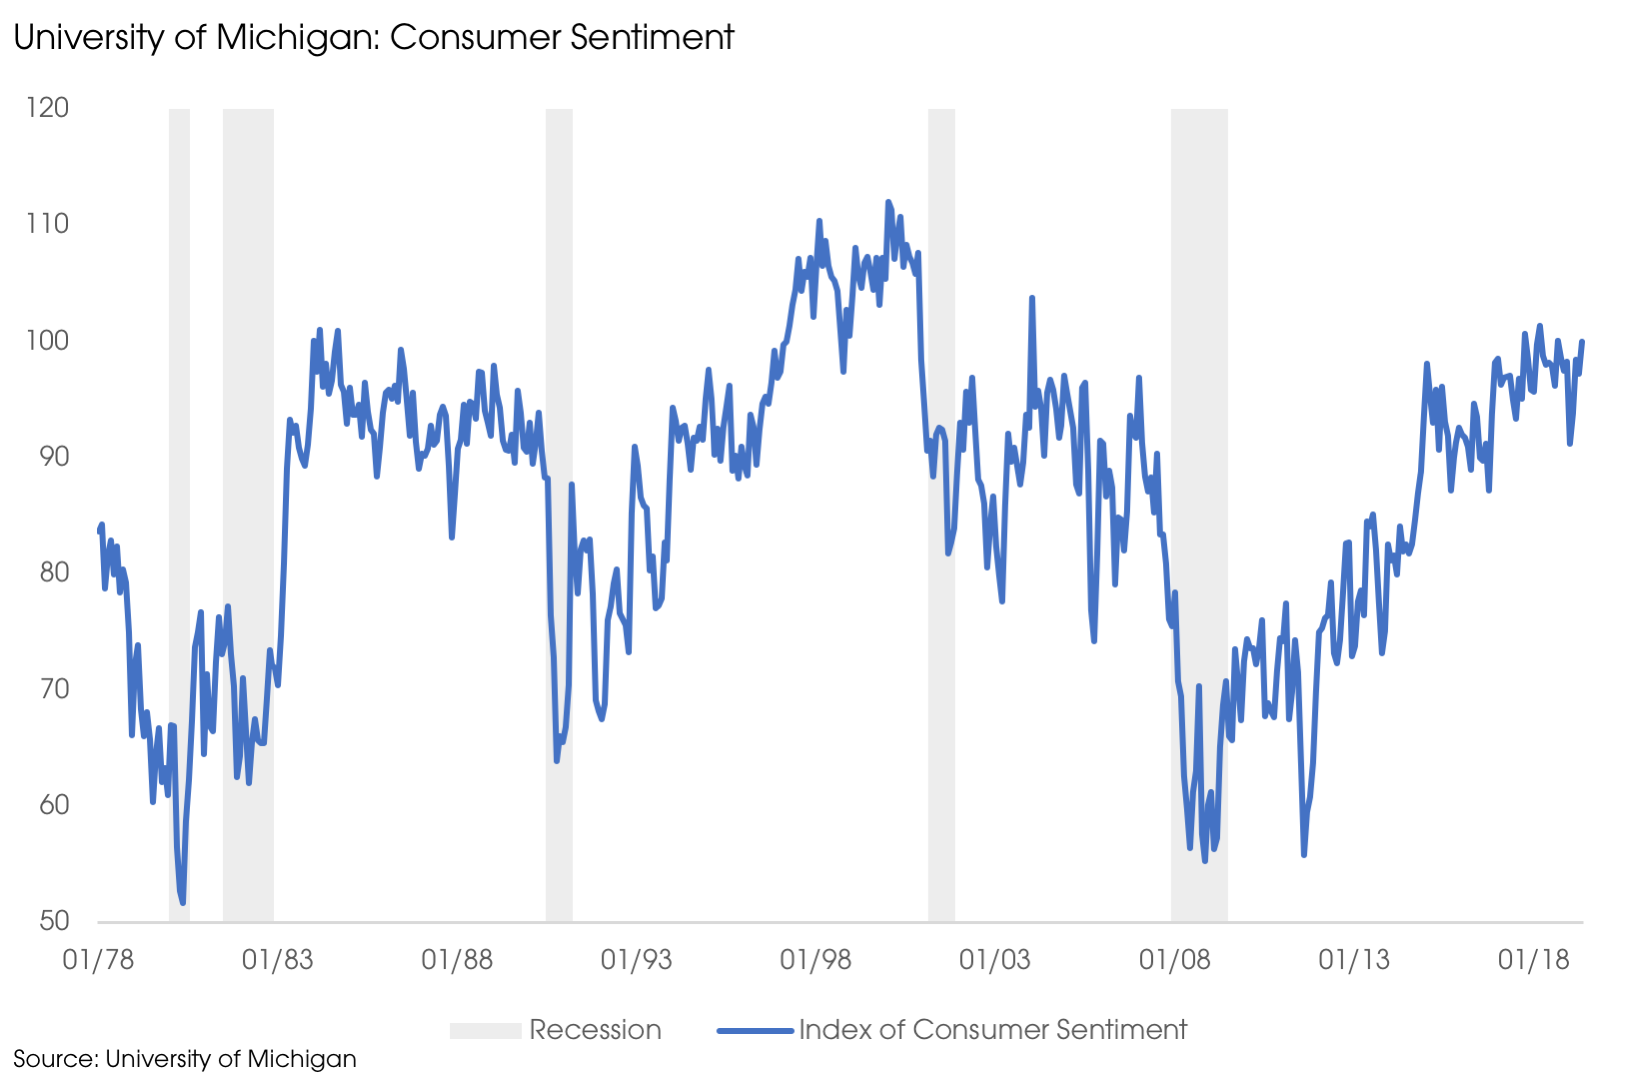 06102019_Consumer Sentiment.png